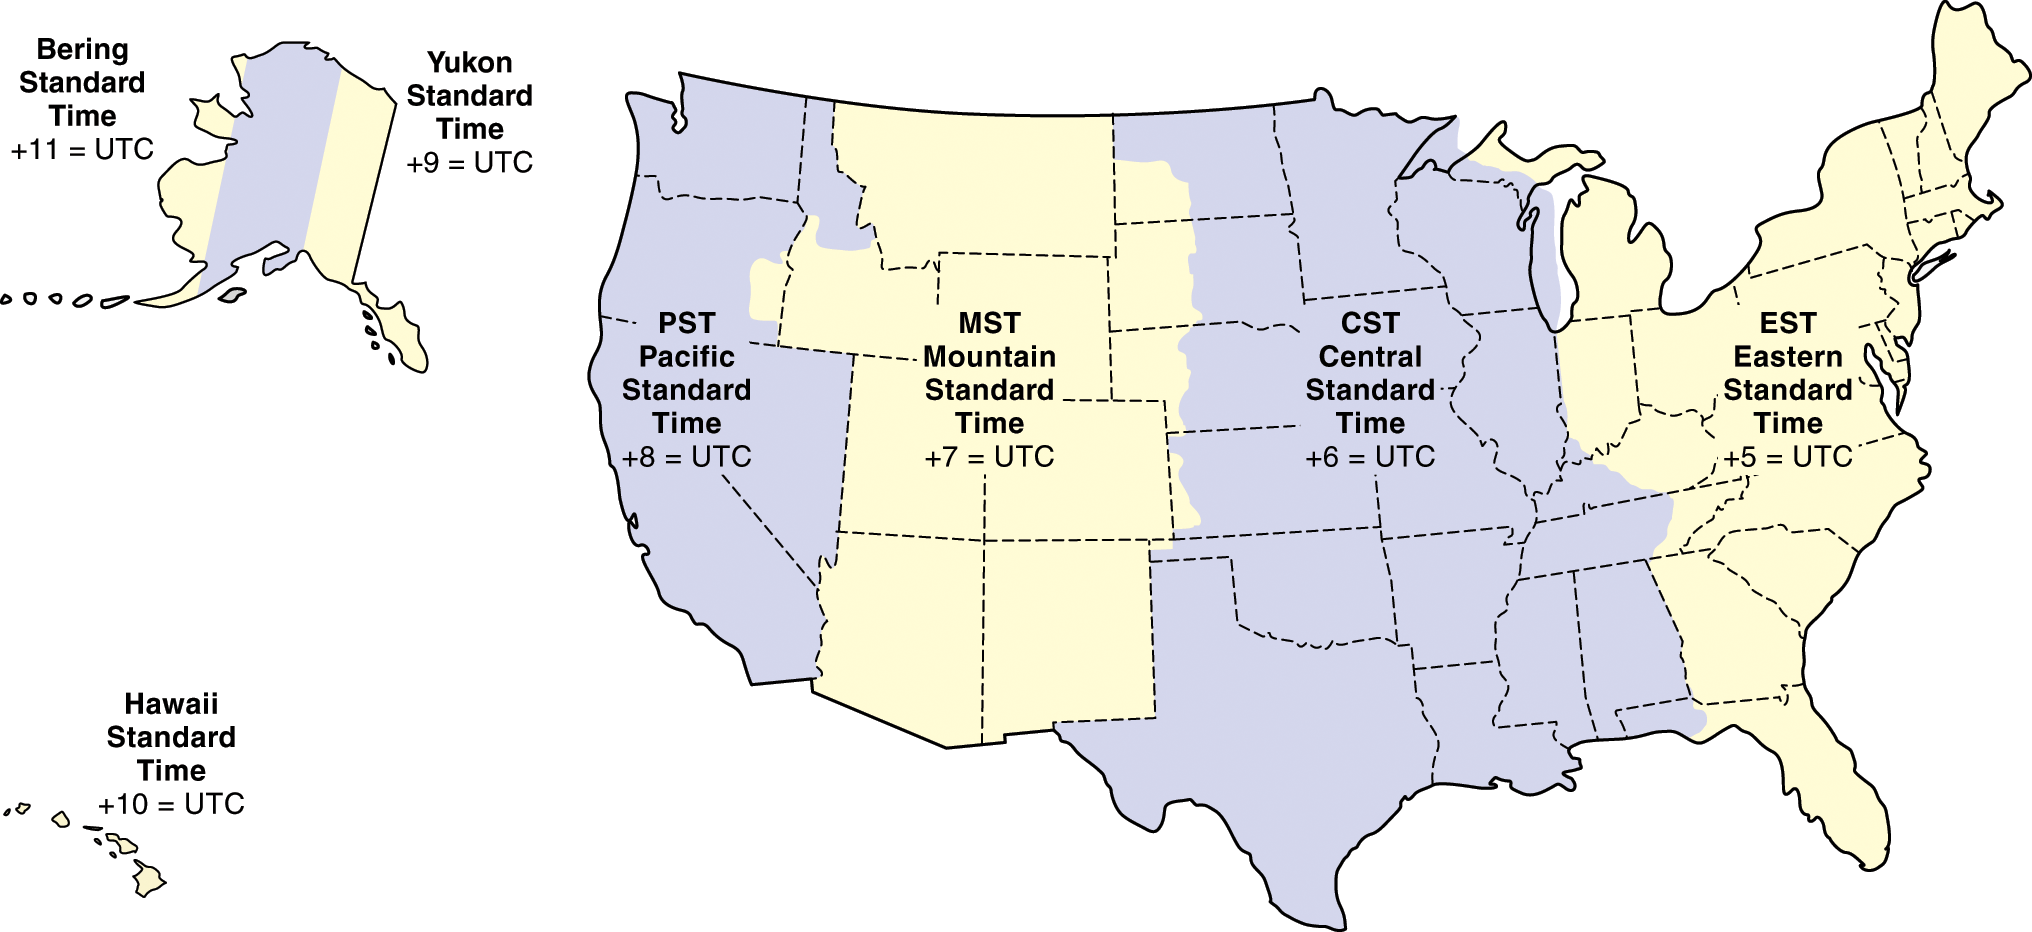 Cfi brief time zones learn to fly blog asa aviation supplies standard time zones in the united states click to enlarge nvjuhfo Gallery